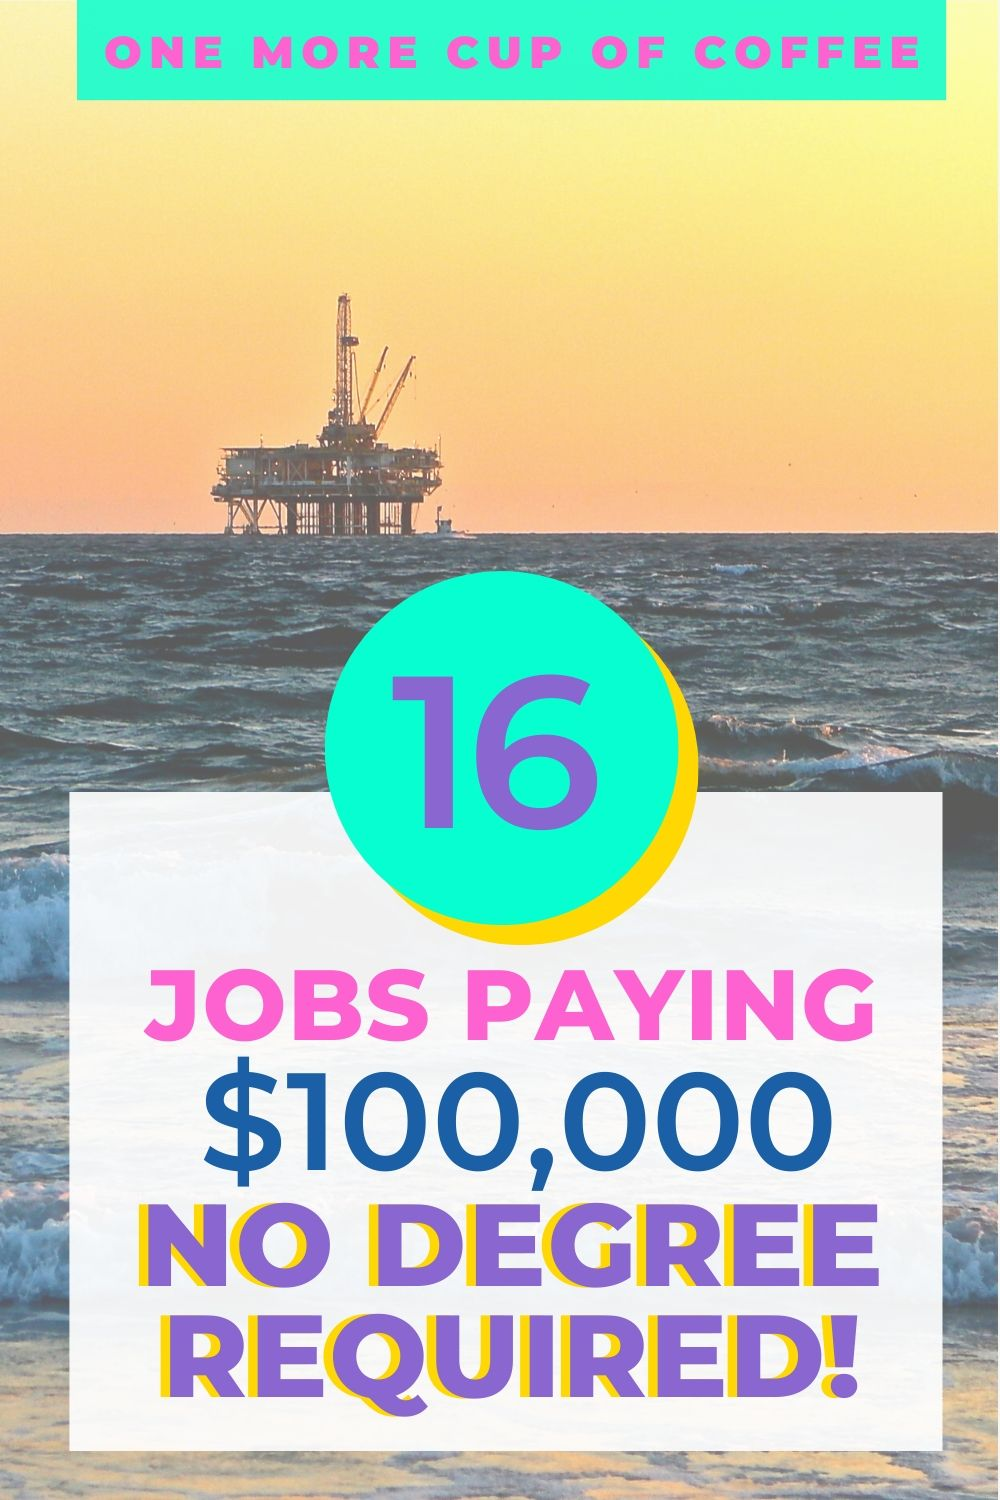 Sunset with oil rig on the horizon to represent jobs that pay $100K and do not require a degree.